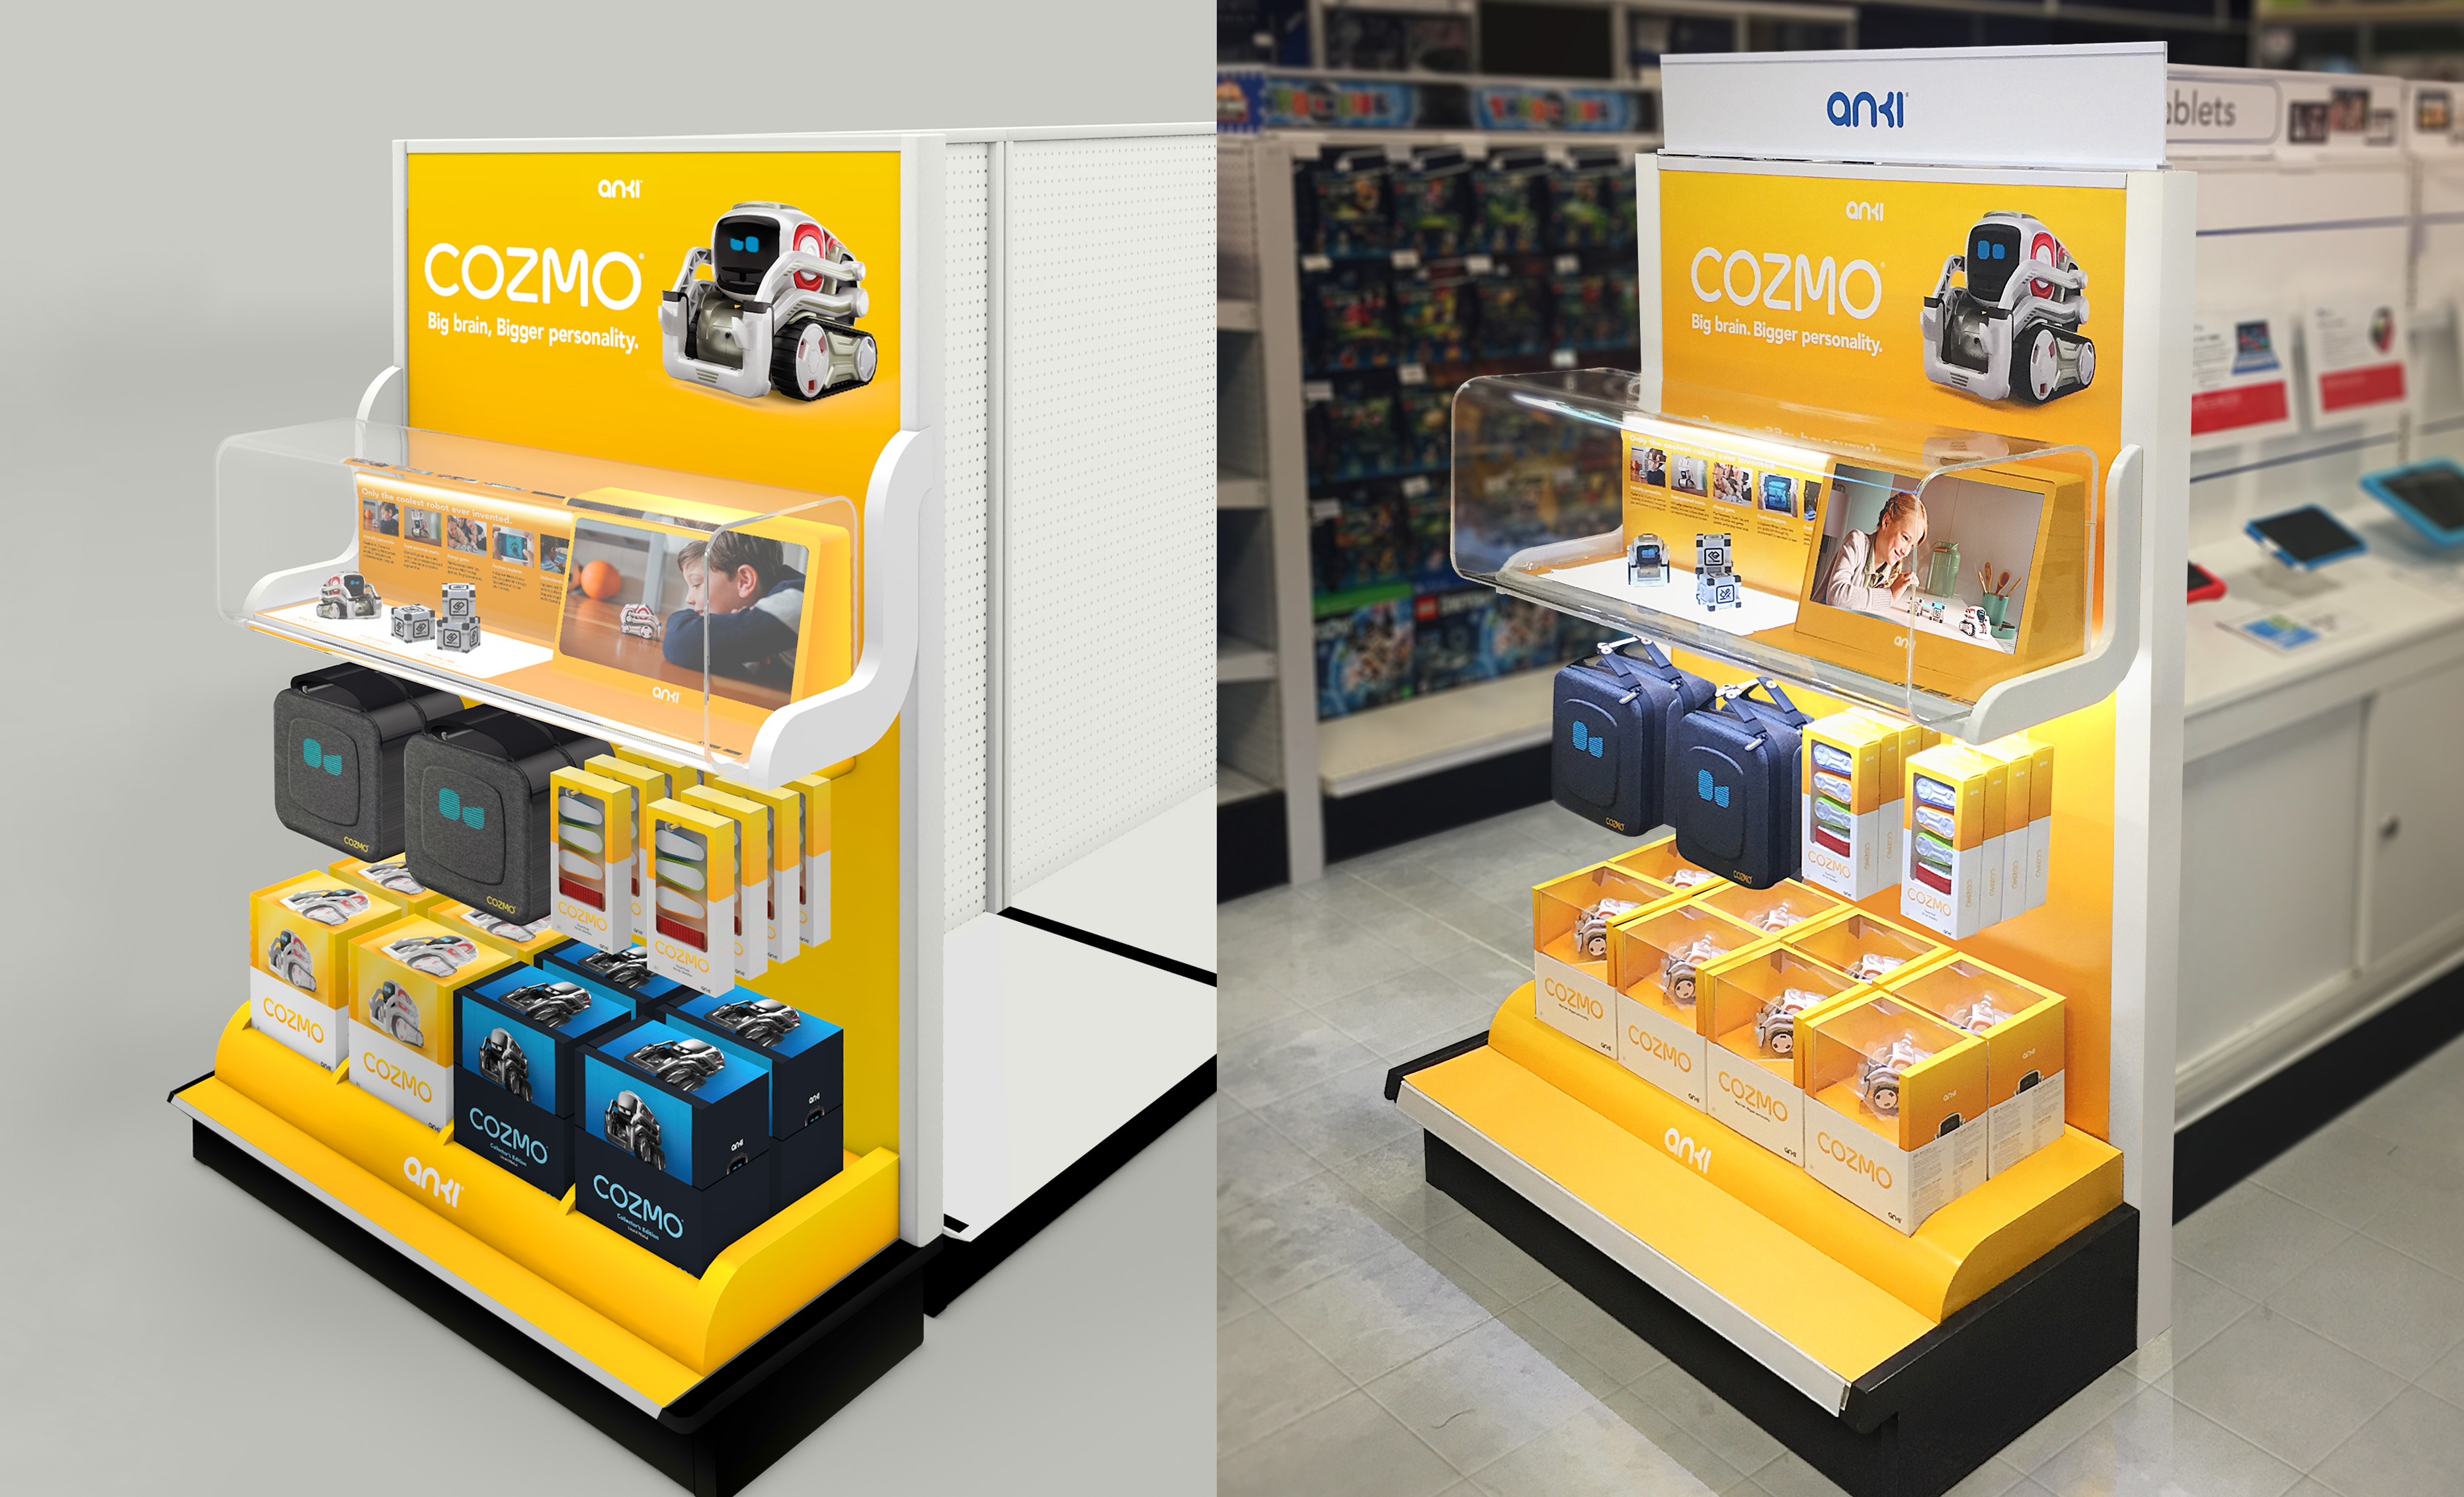 Cozmo the small AI robot on product display in store setting  with related cozmo related products